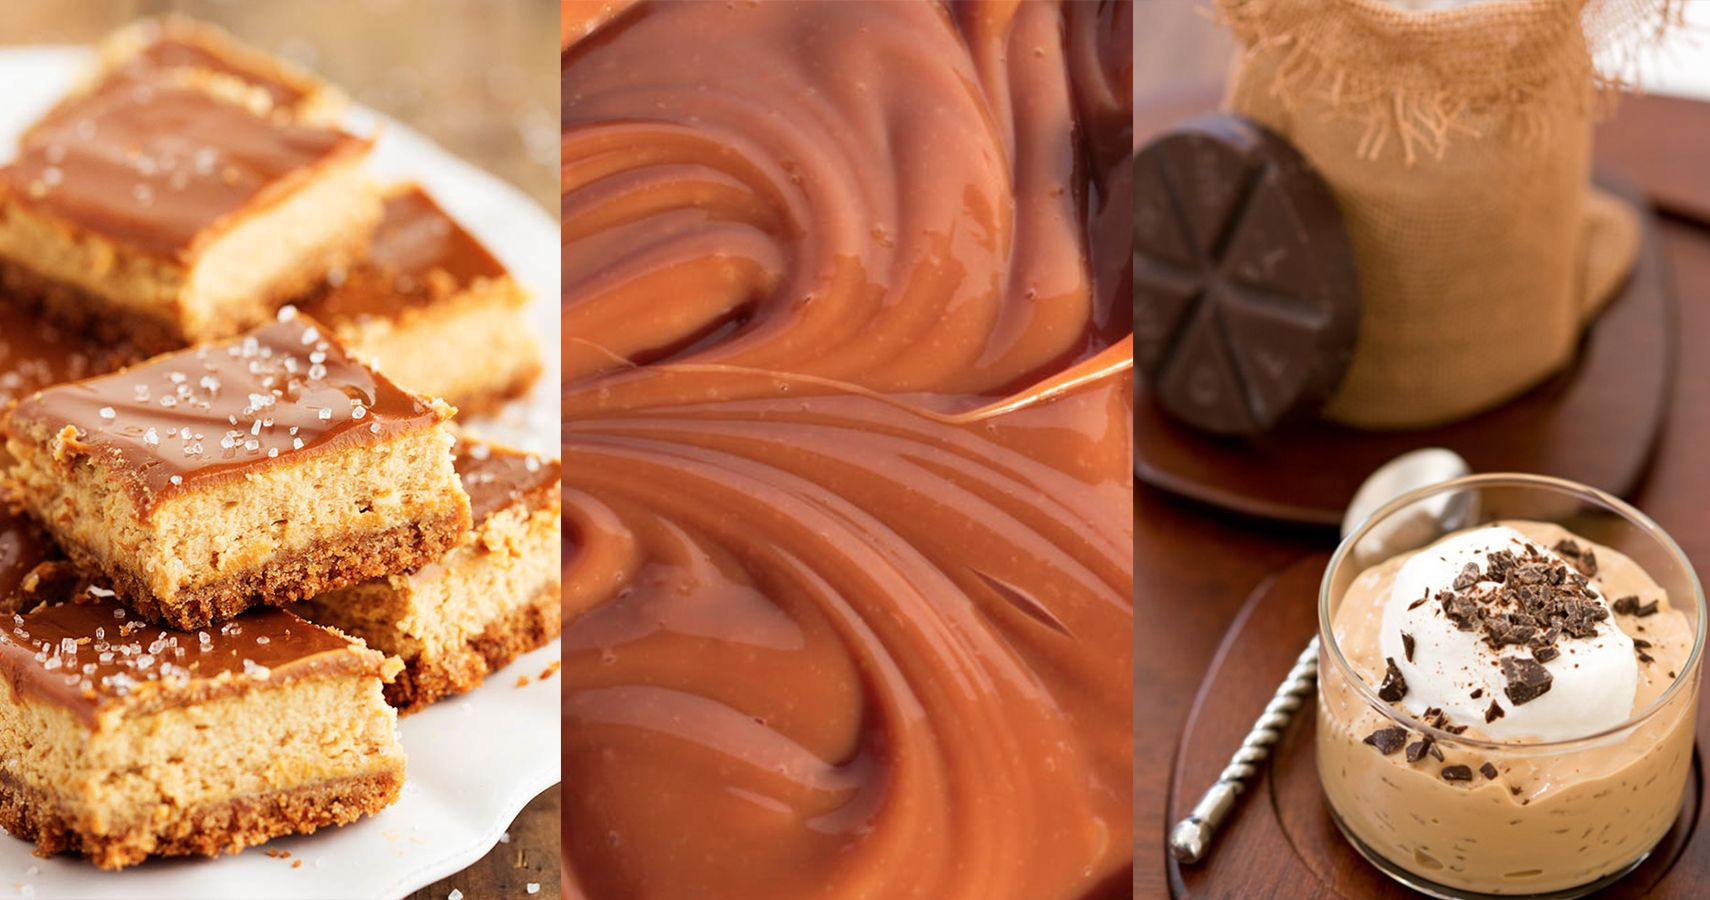 15 Decadent Ways To Cook With Dulce de Leche